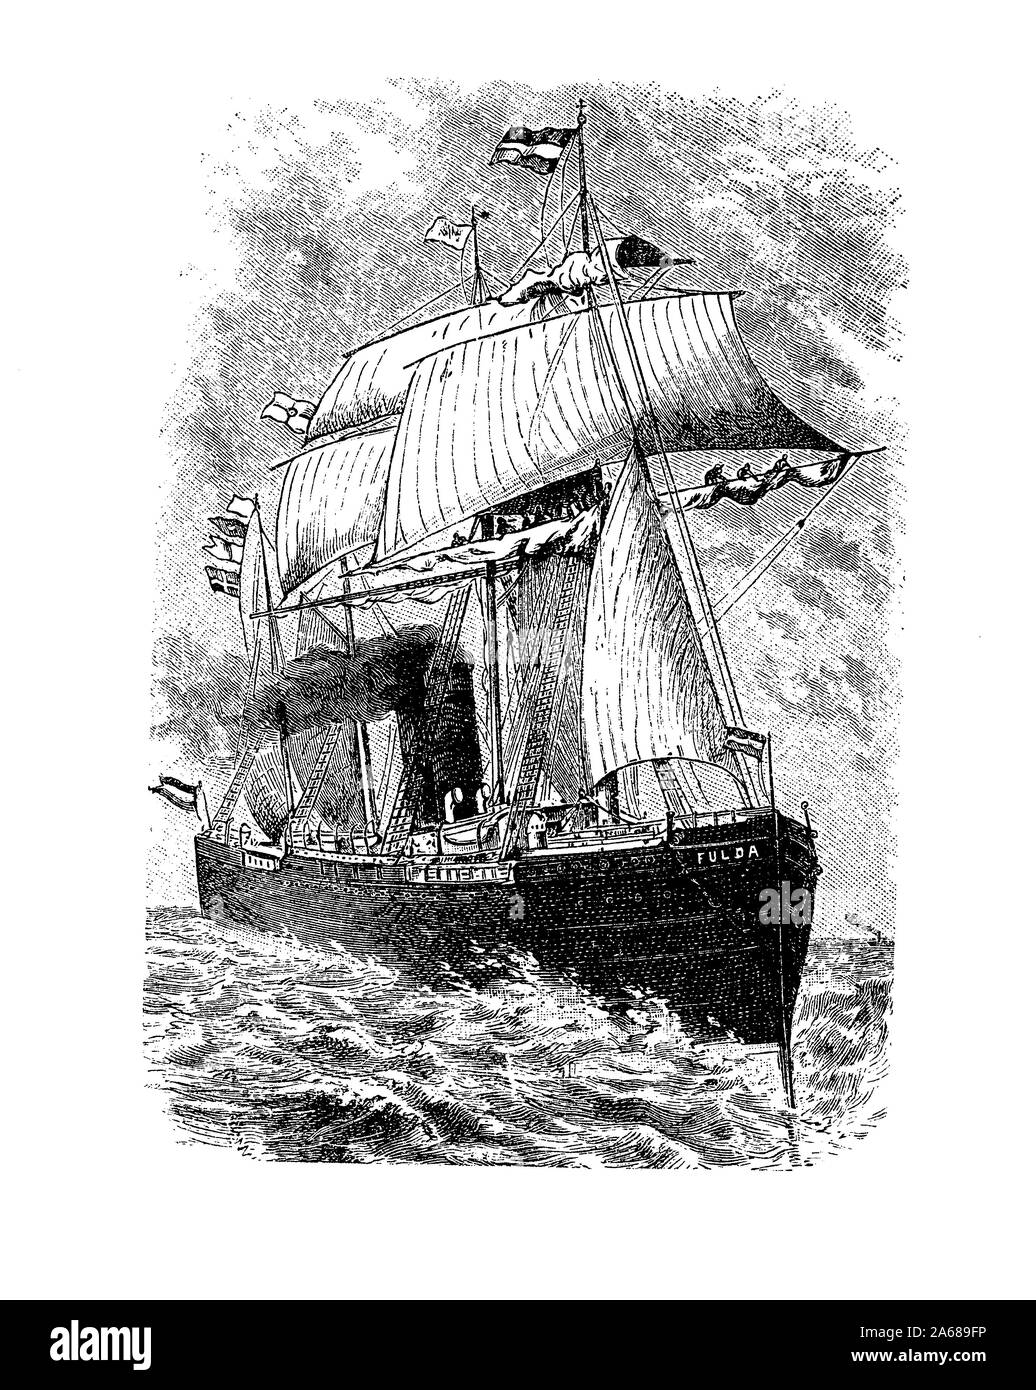 The transatlantic steam-ship Fulda of the fleet of the North German Lloyd Company, cargo and passenger speedboat with many decorated saloons and cabin, 19th century Stock Photo